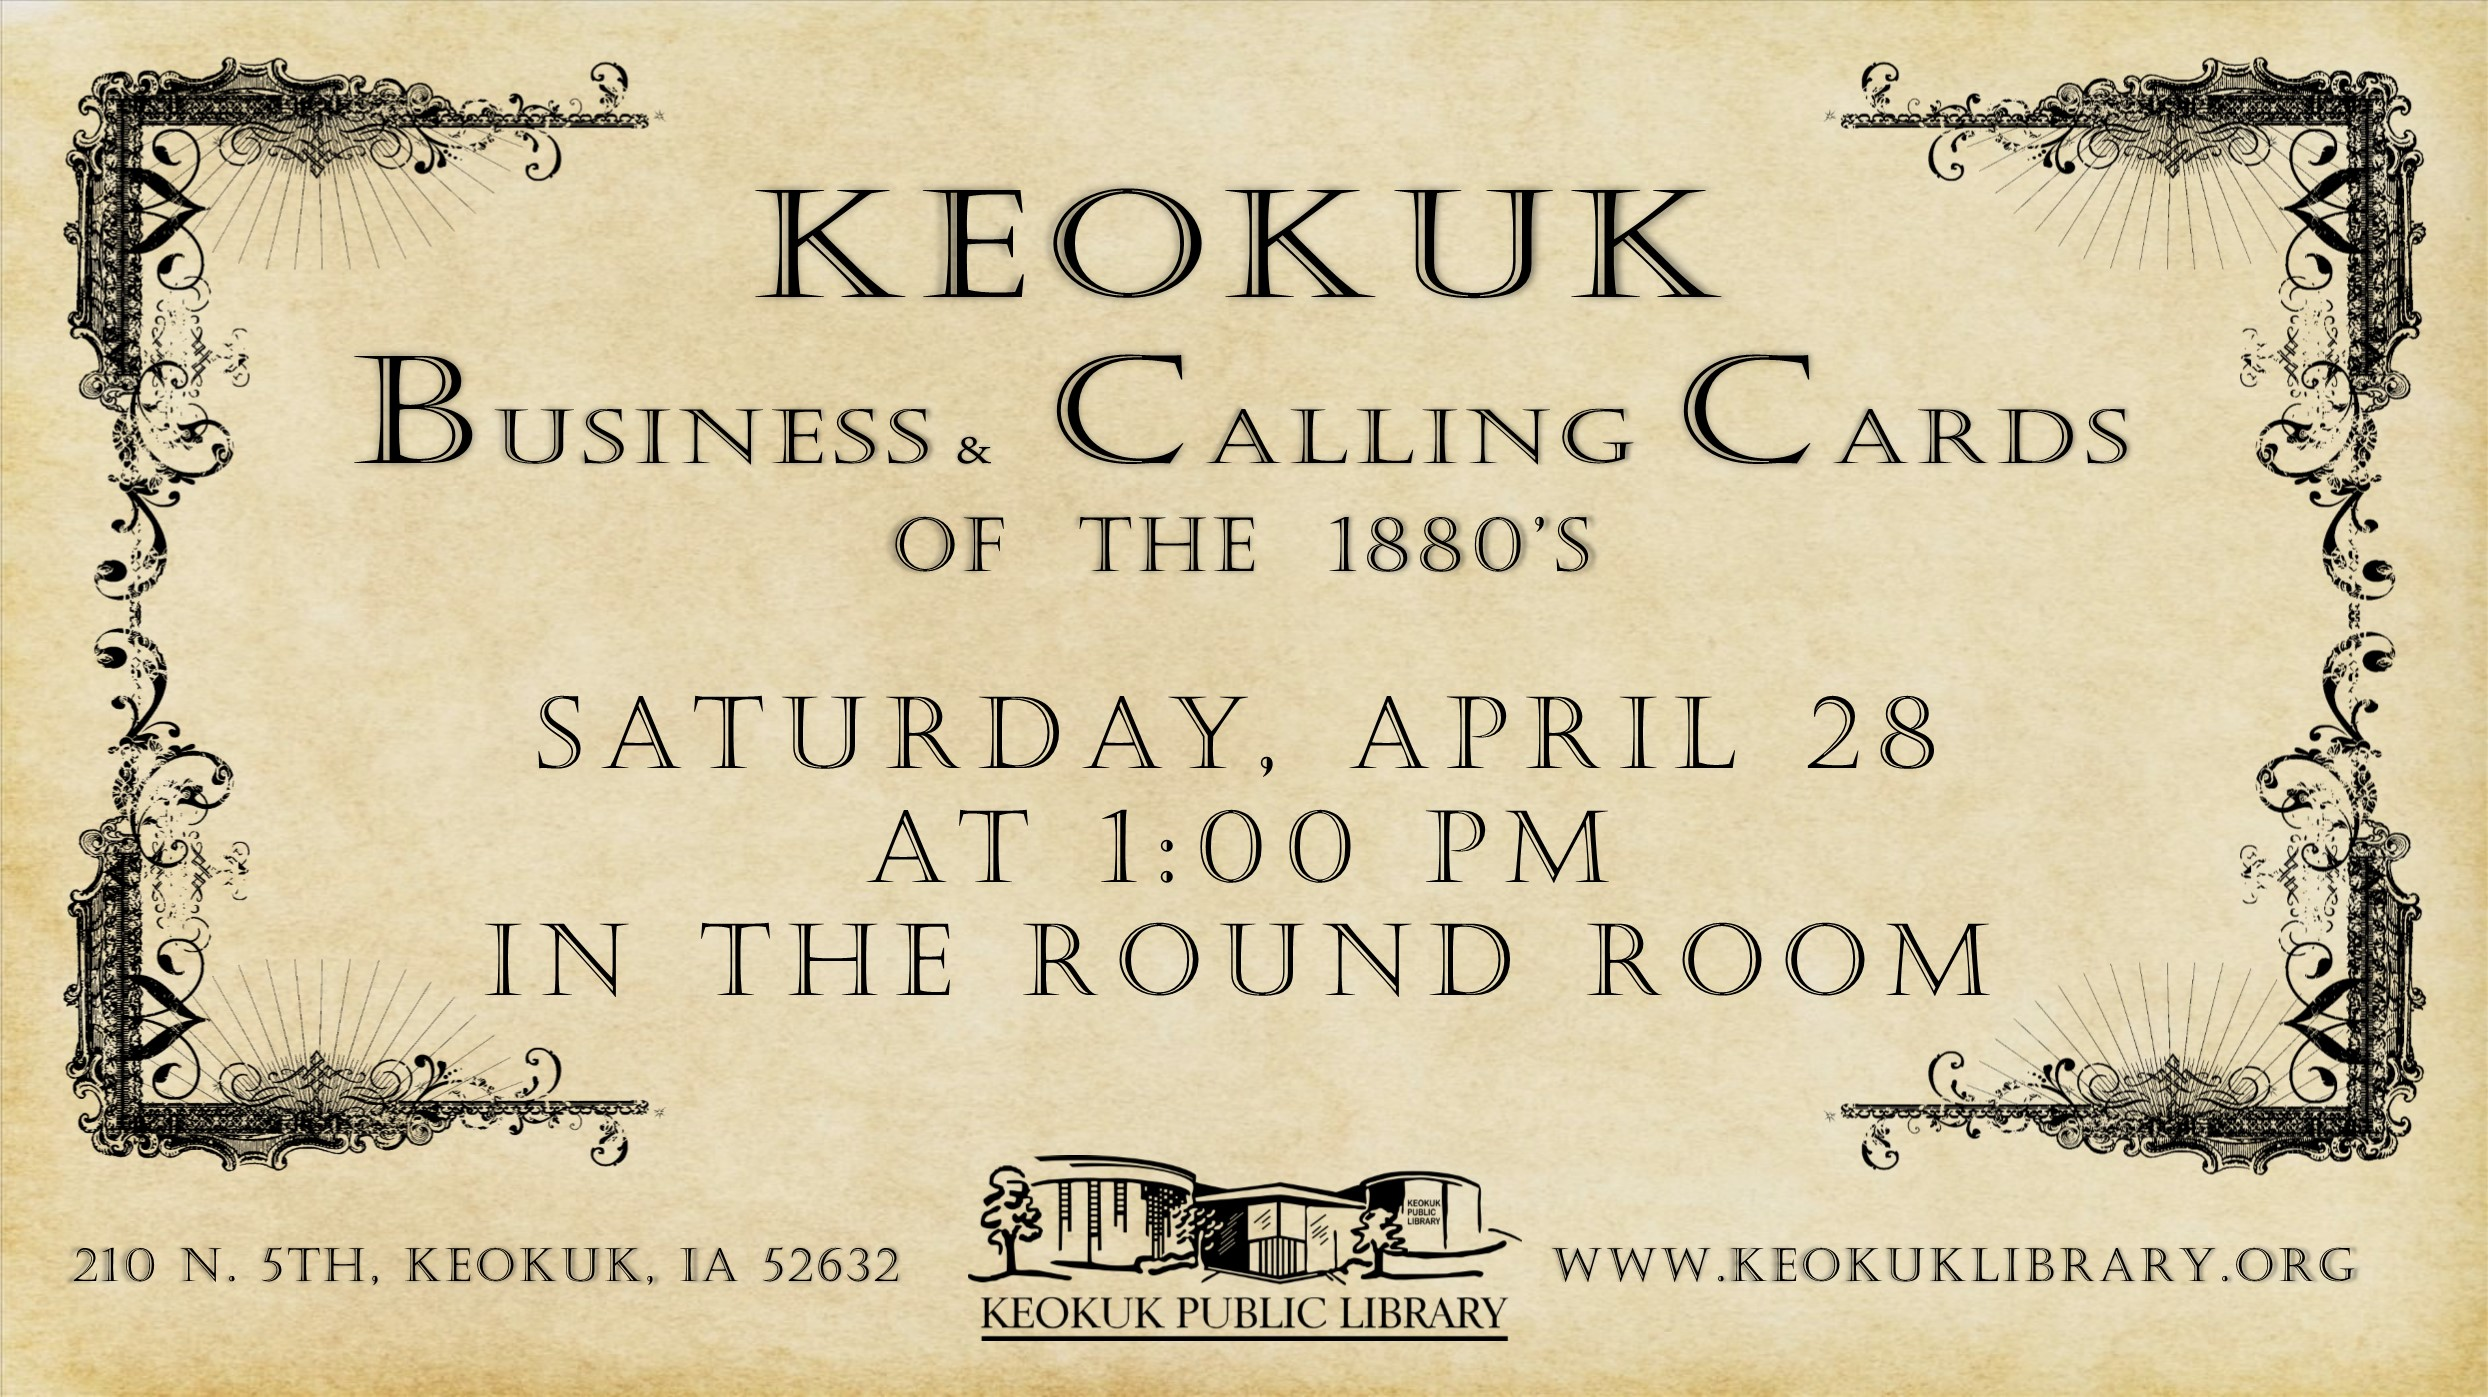 Keokuk Events - Keokuk Business and Calling Cards of the 1880\'s